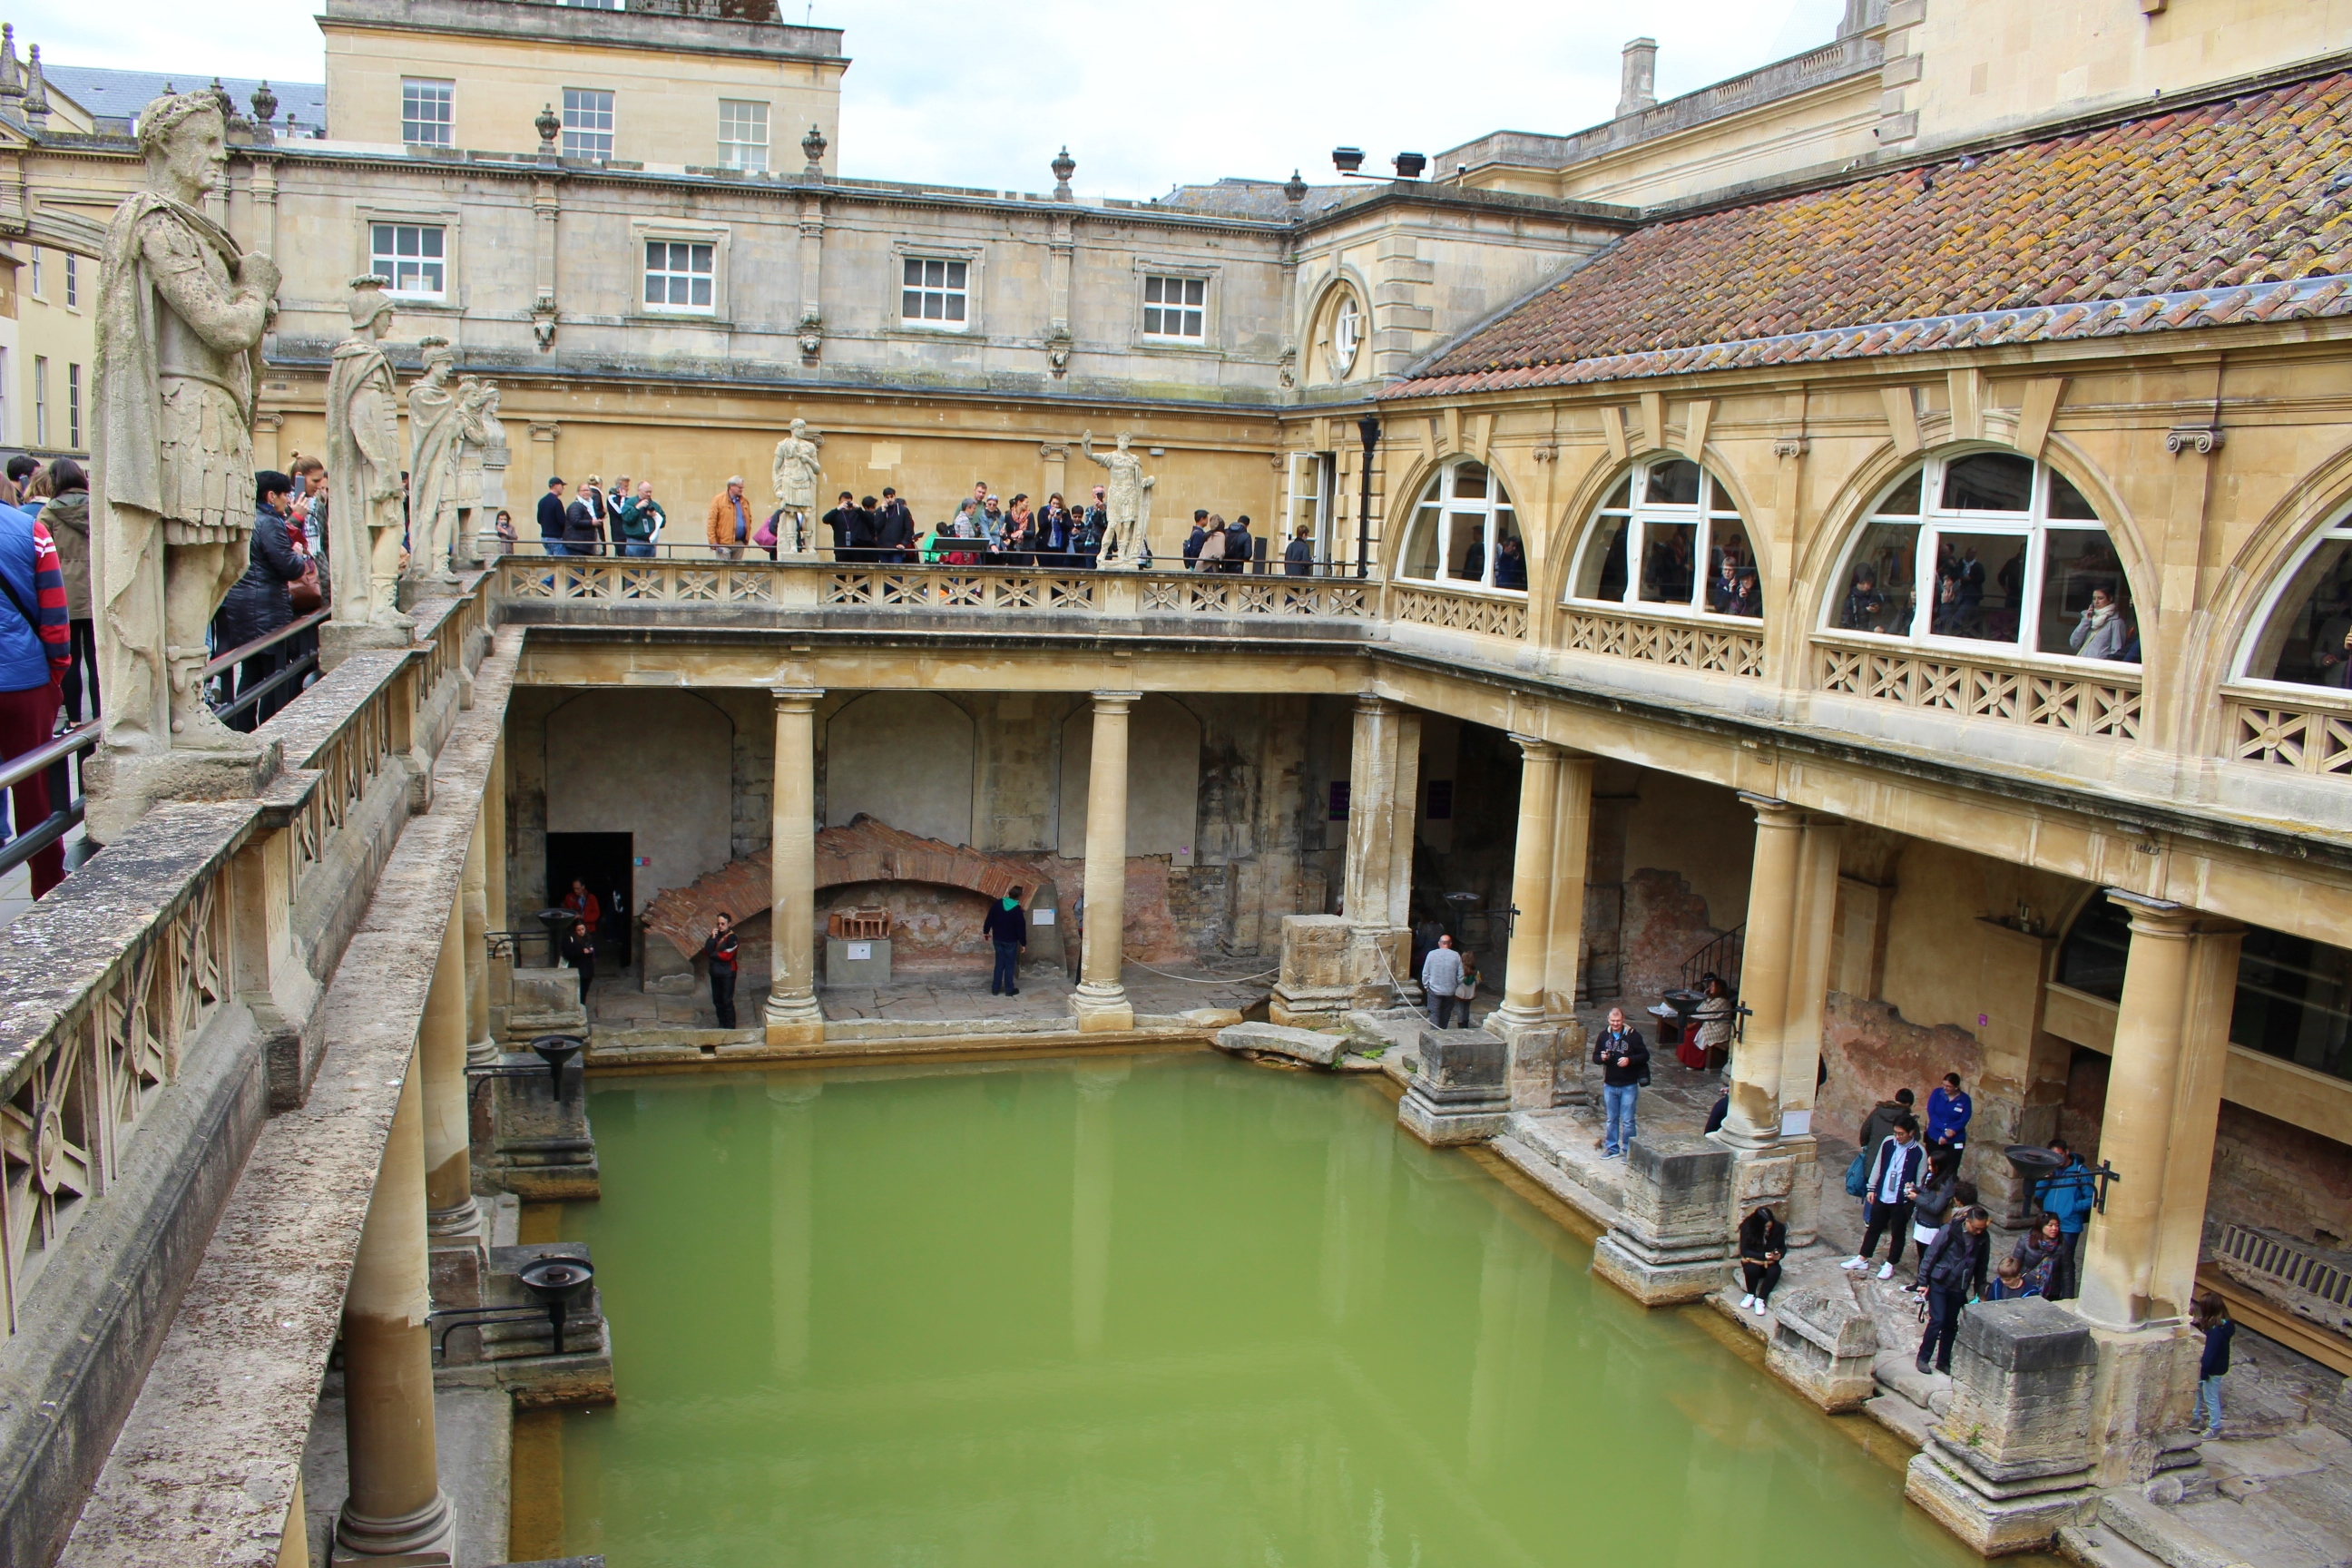 Bath Angleterre Thermes romains